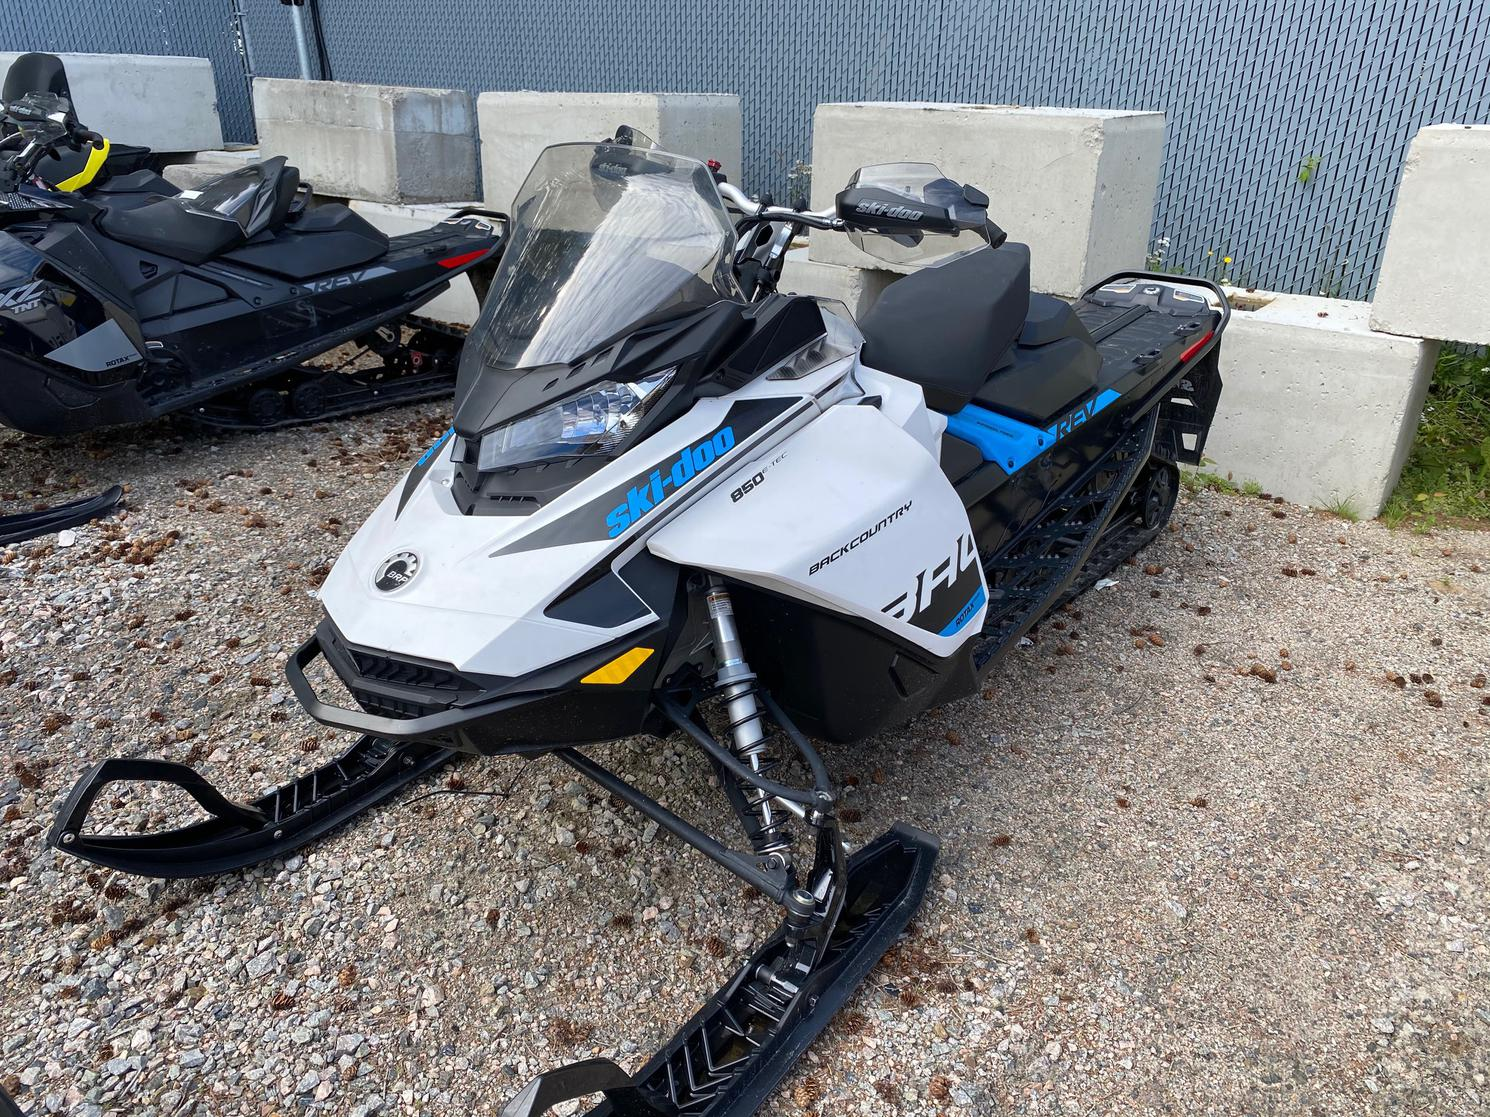 2020 Ski-Doo BACKCOUNTRY 850 ETEC